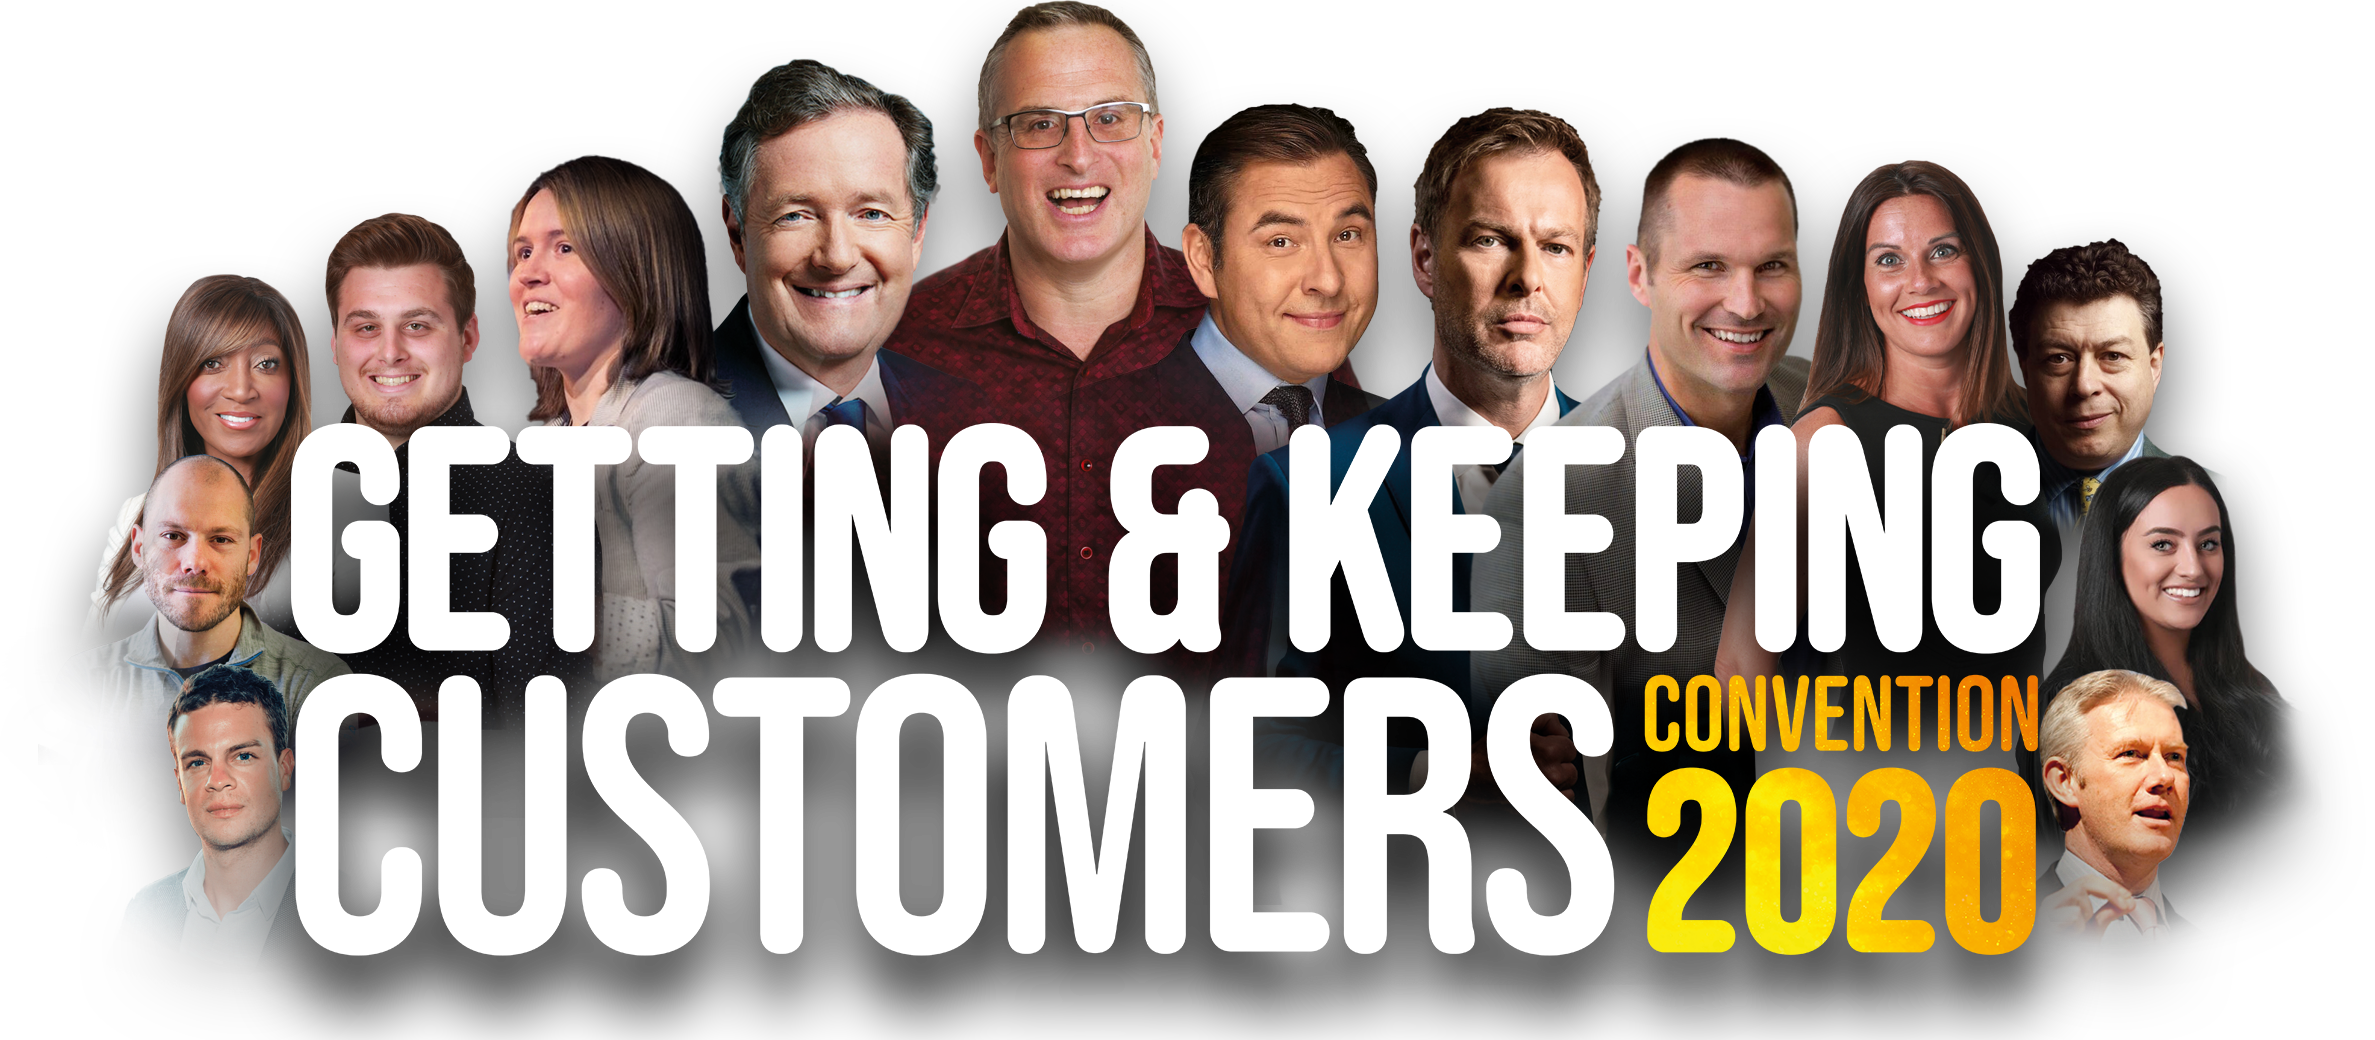 The Getting & Keeping Customers Convention 2020